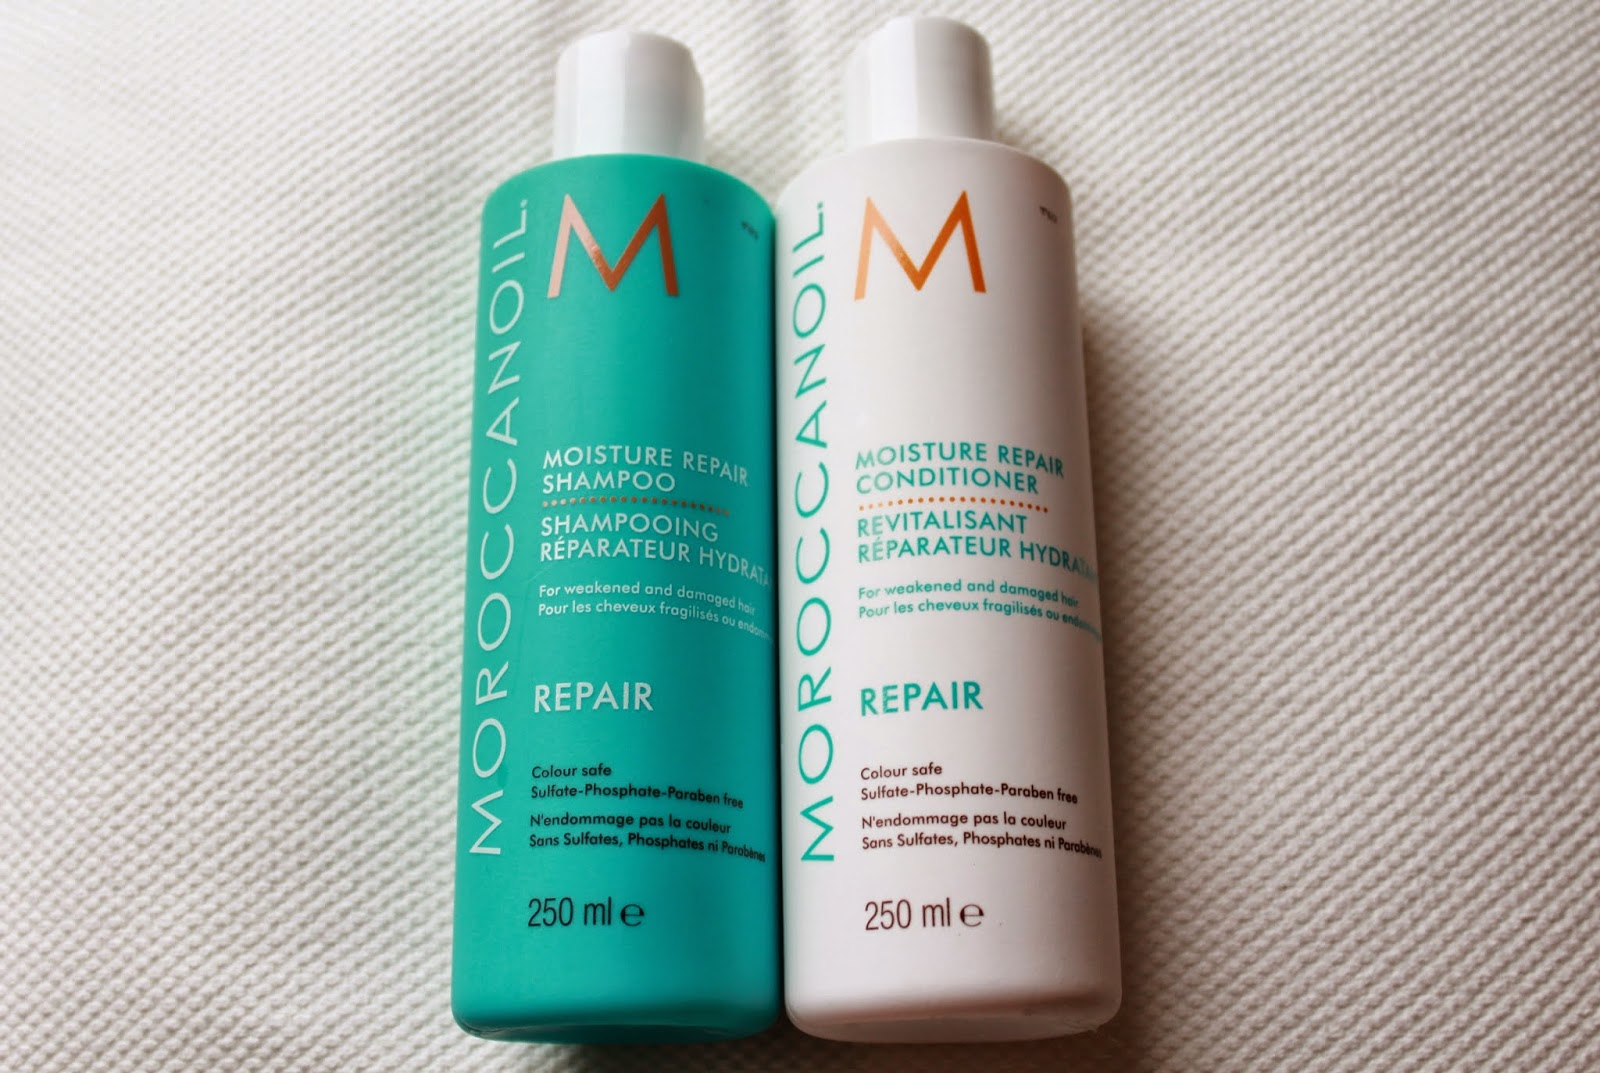 Moroccan Oil Repair Shampoo and Conditioner